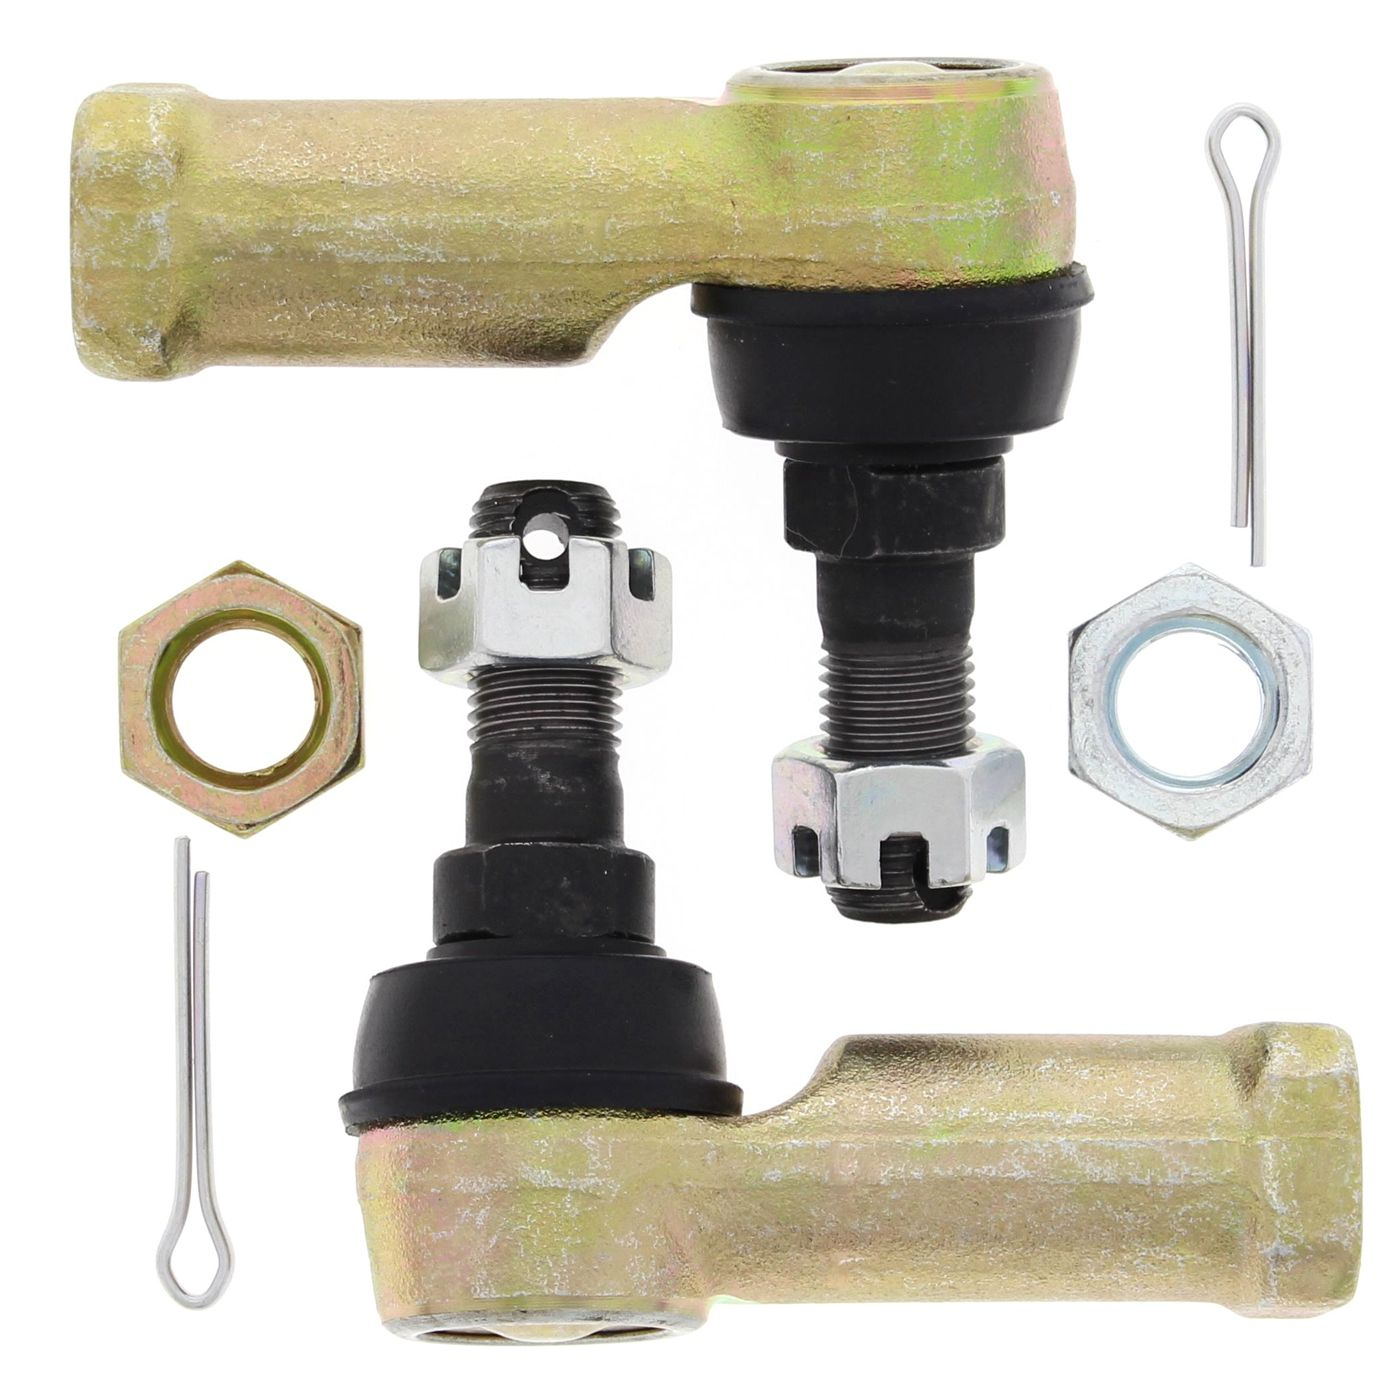 Wrp Tie Rod Ends - WRP511008 image